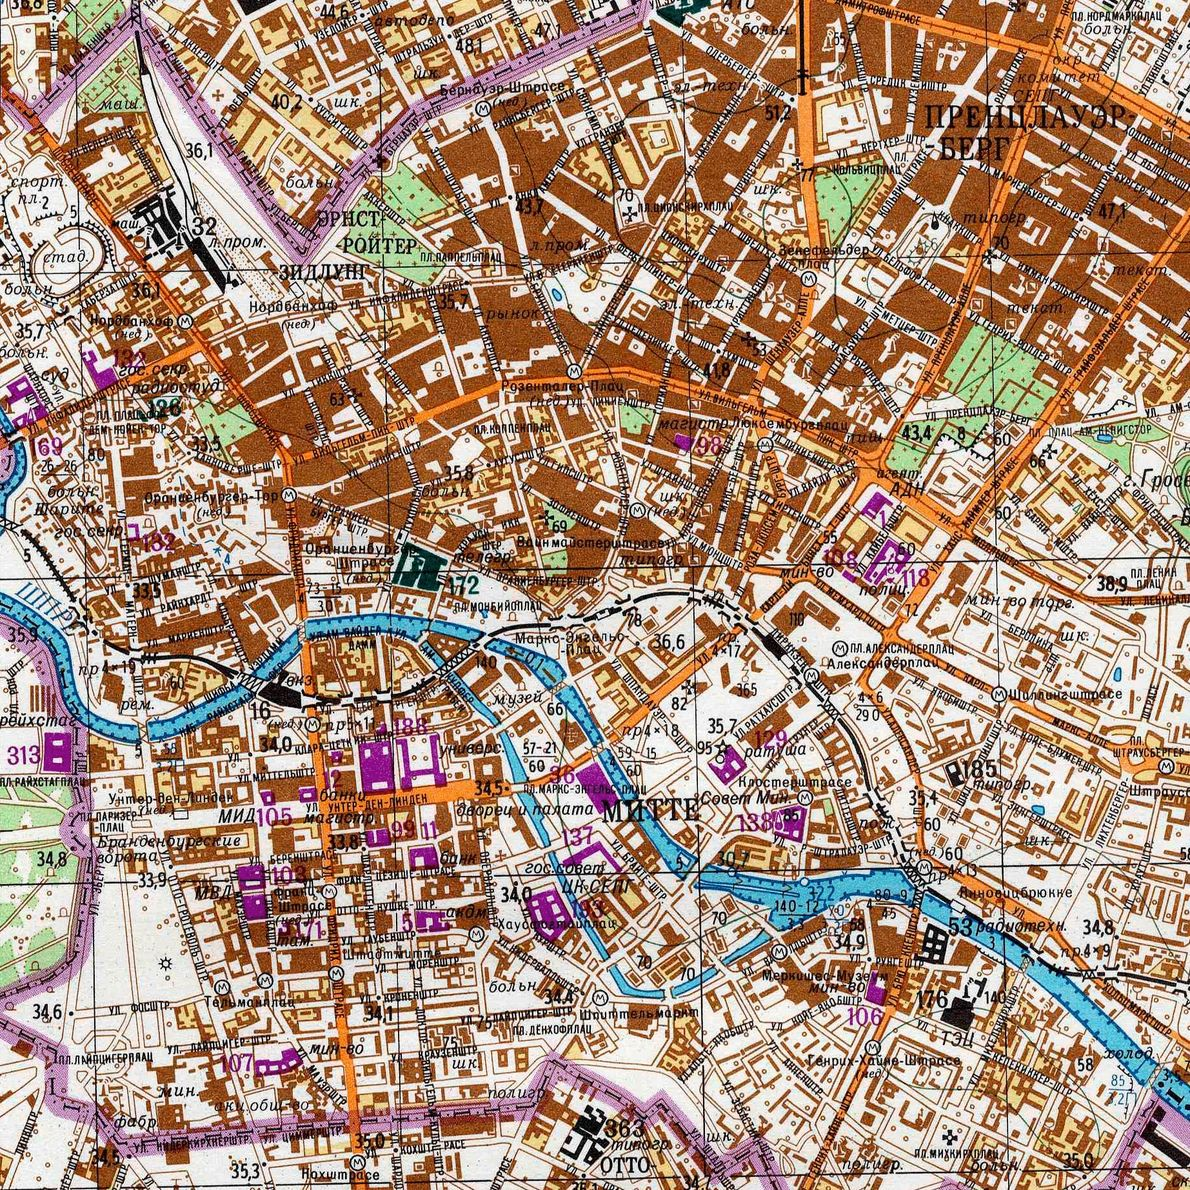 The Berlin Wall is outlined in magenta in this Soviet map printed in 1983.